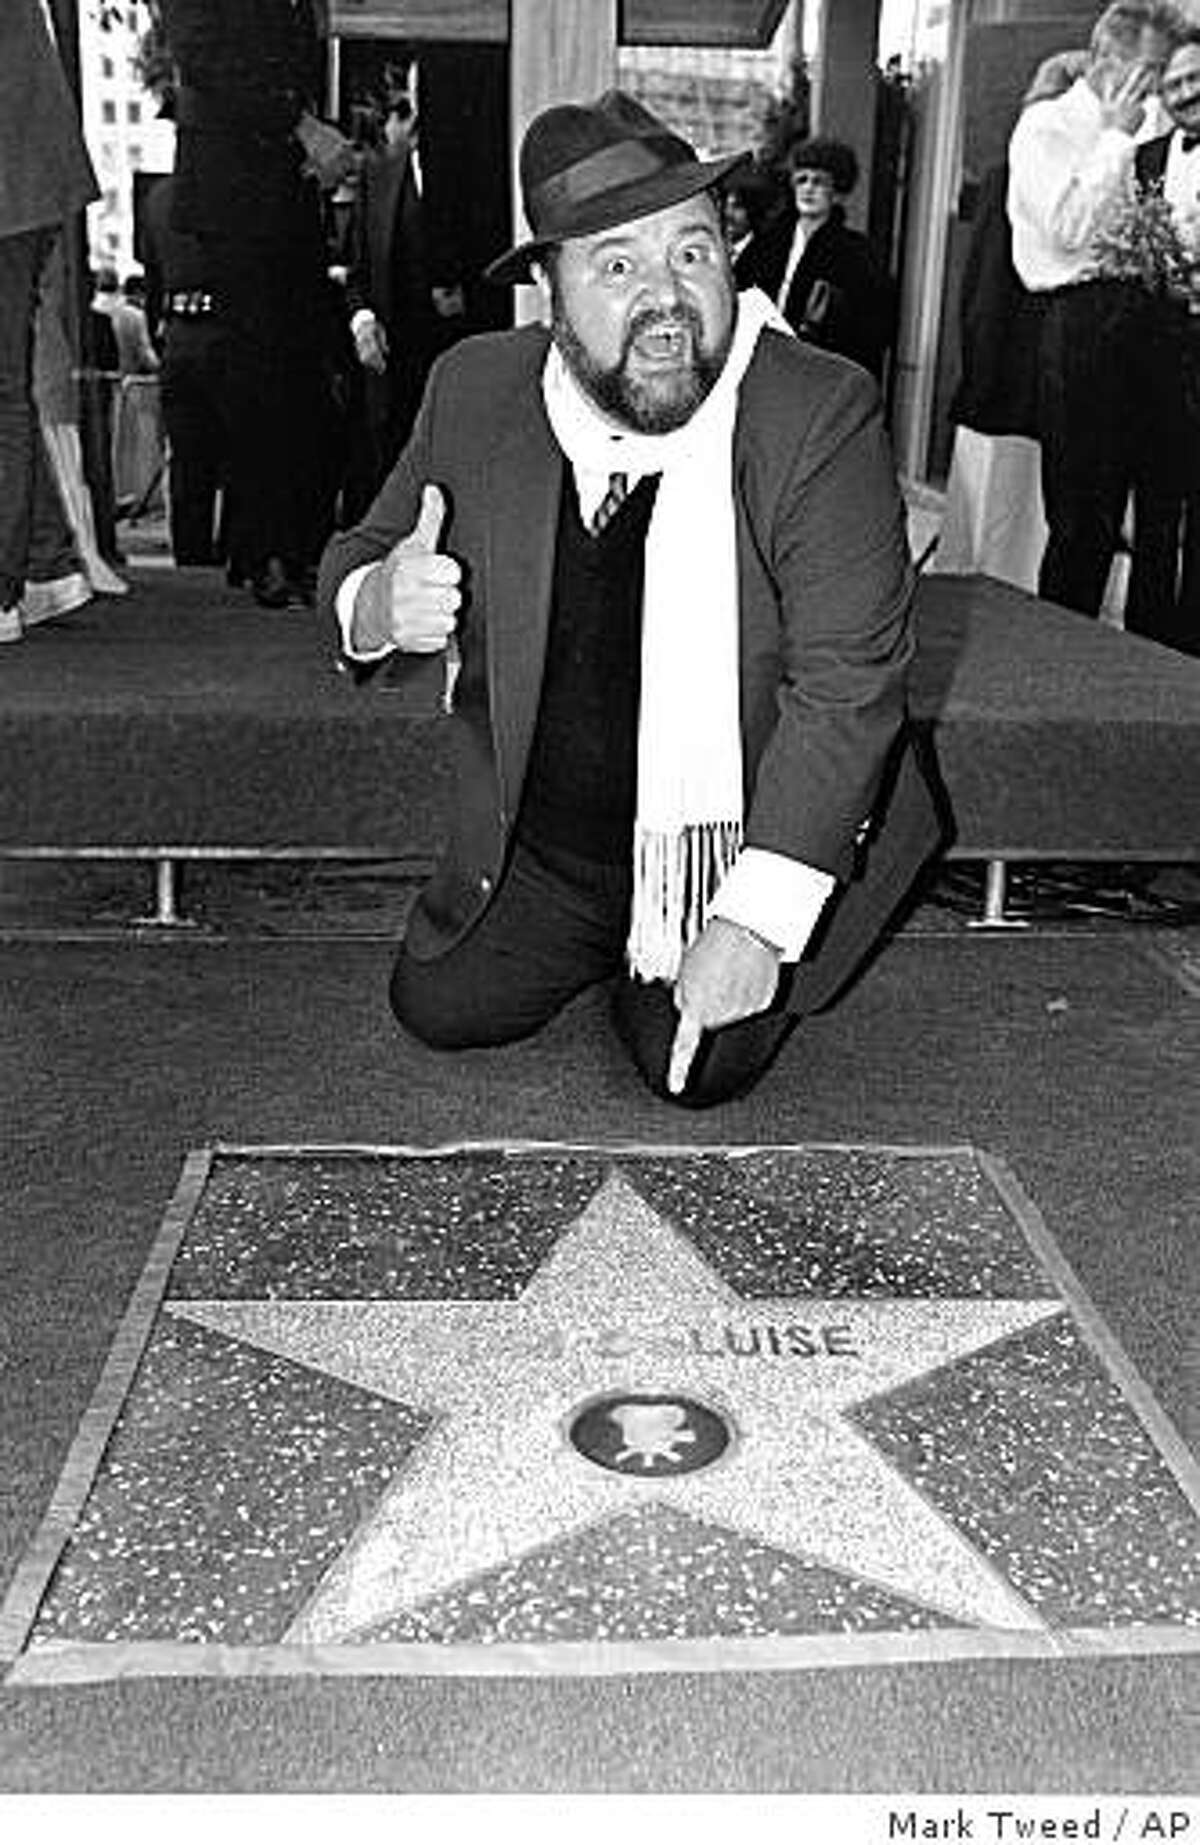 In this May 7, 1985 file photo, actor Dom DeLuise points to his star on the Hollywood Walk of Fame. DeLuise died in Southern California on Monday, May 4, 2009, according to his son, Michael DeLuise. He was 75.